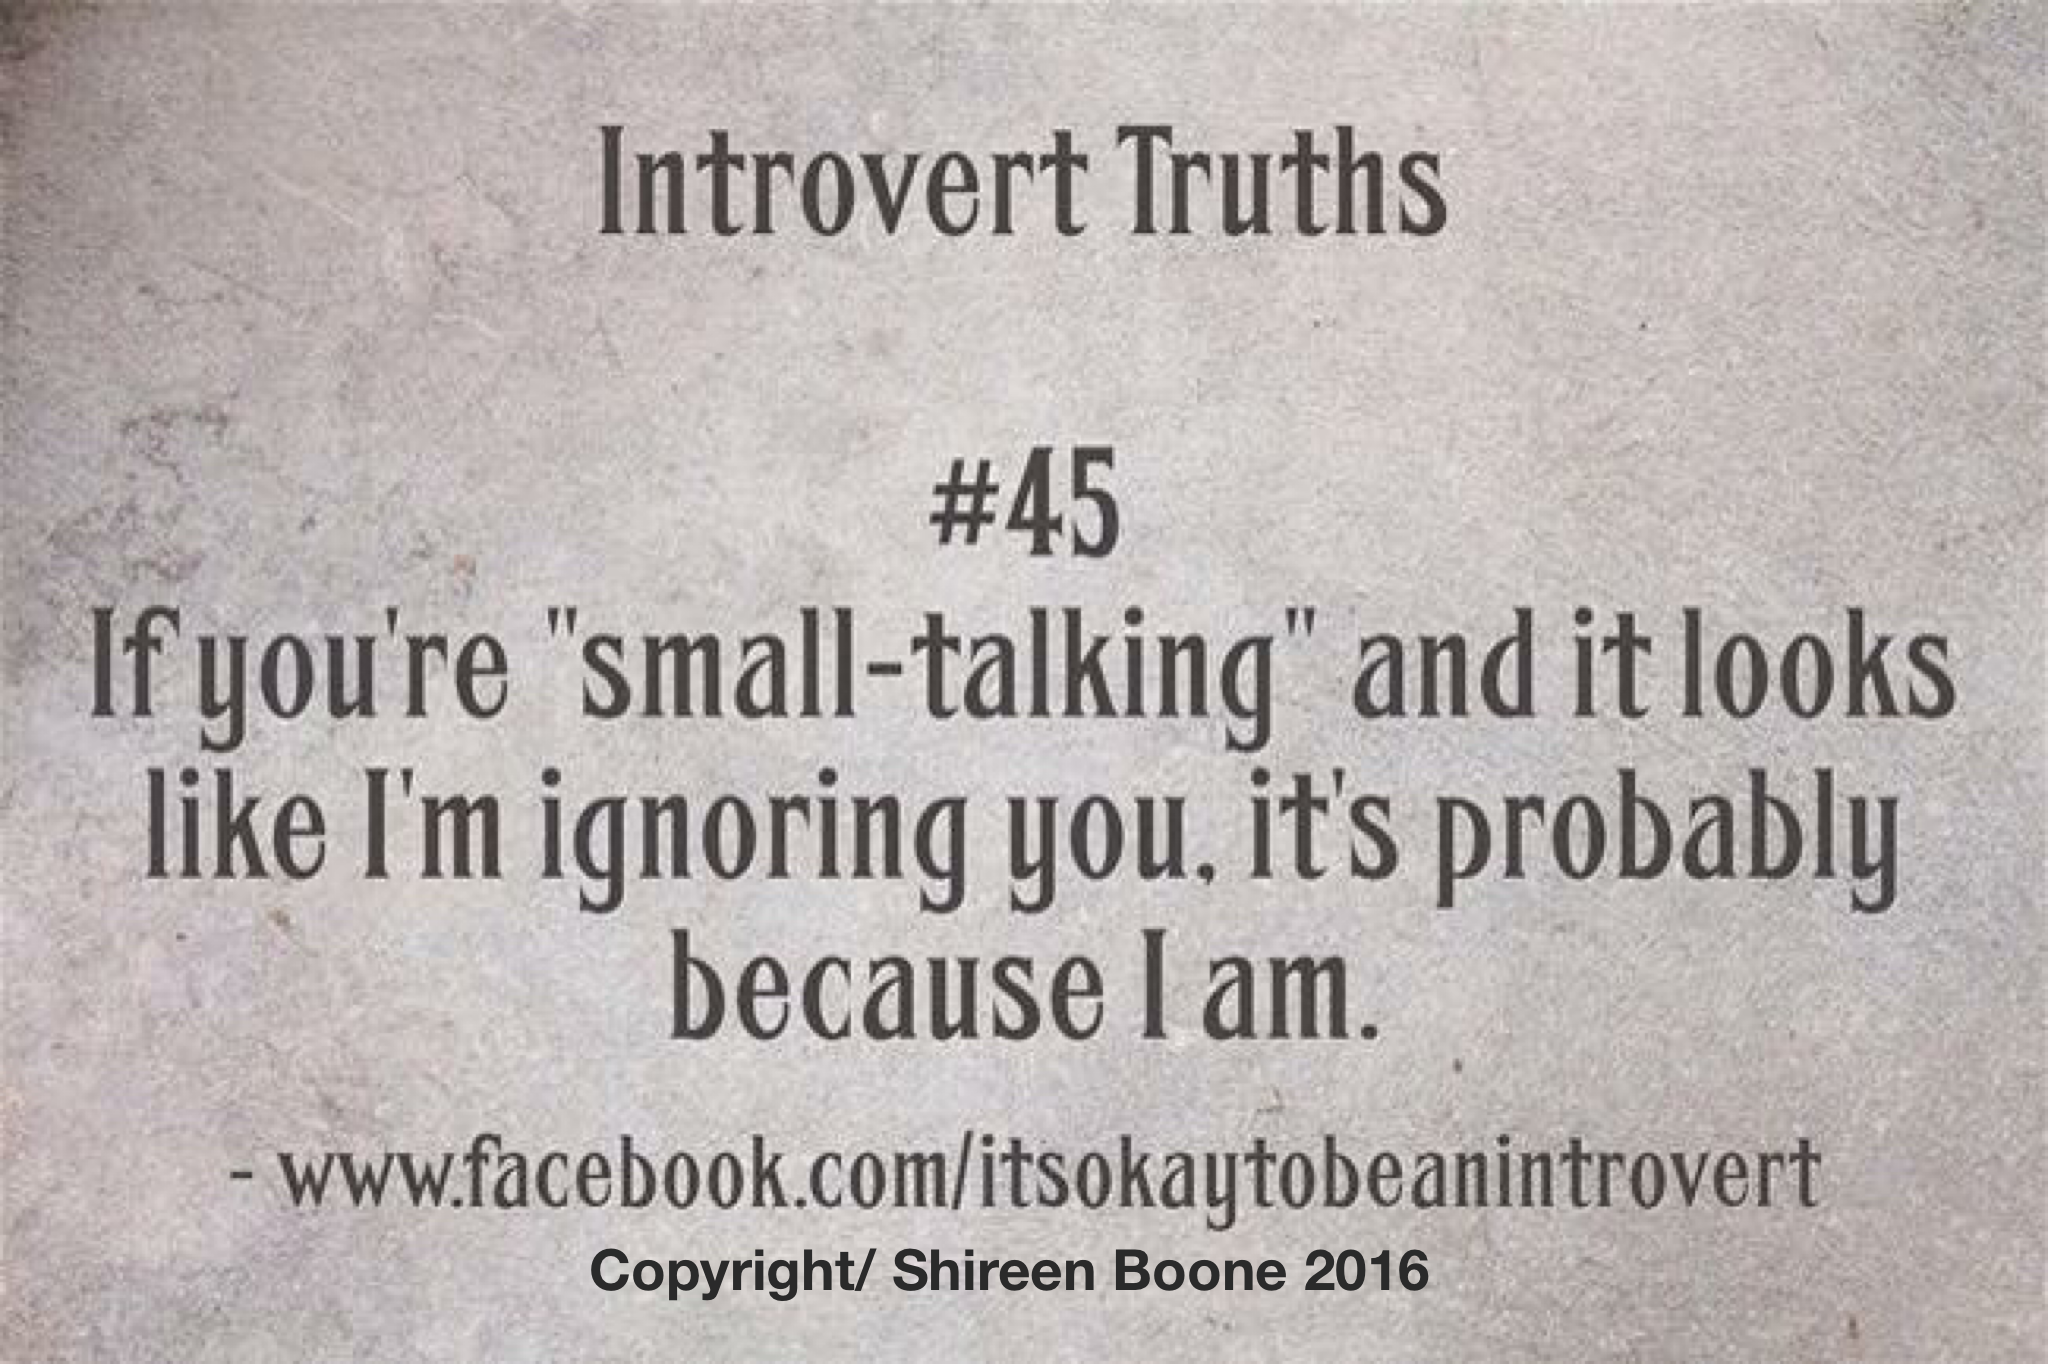 FB/It's okay to be an Introvert. Copyright/ Shireen Boone 2016